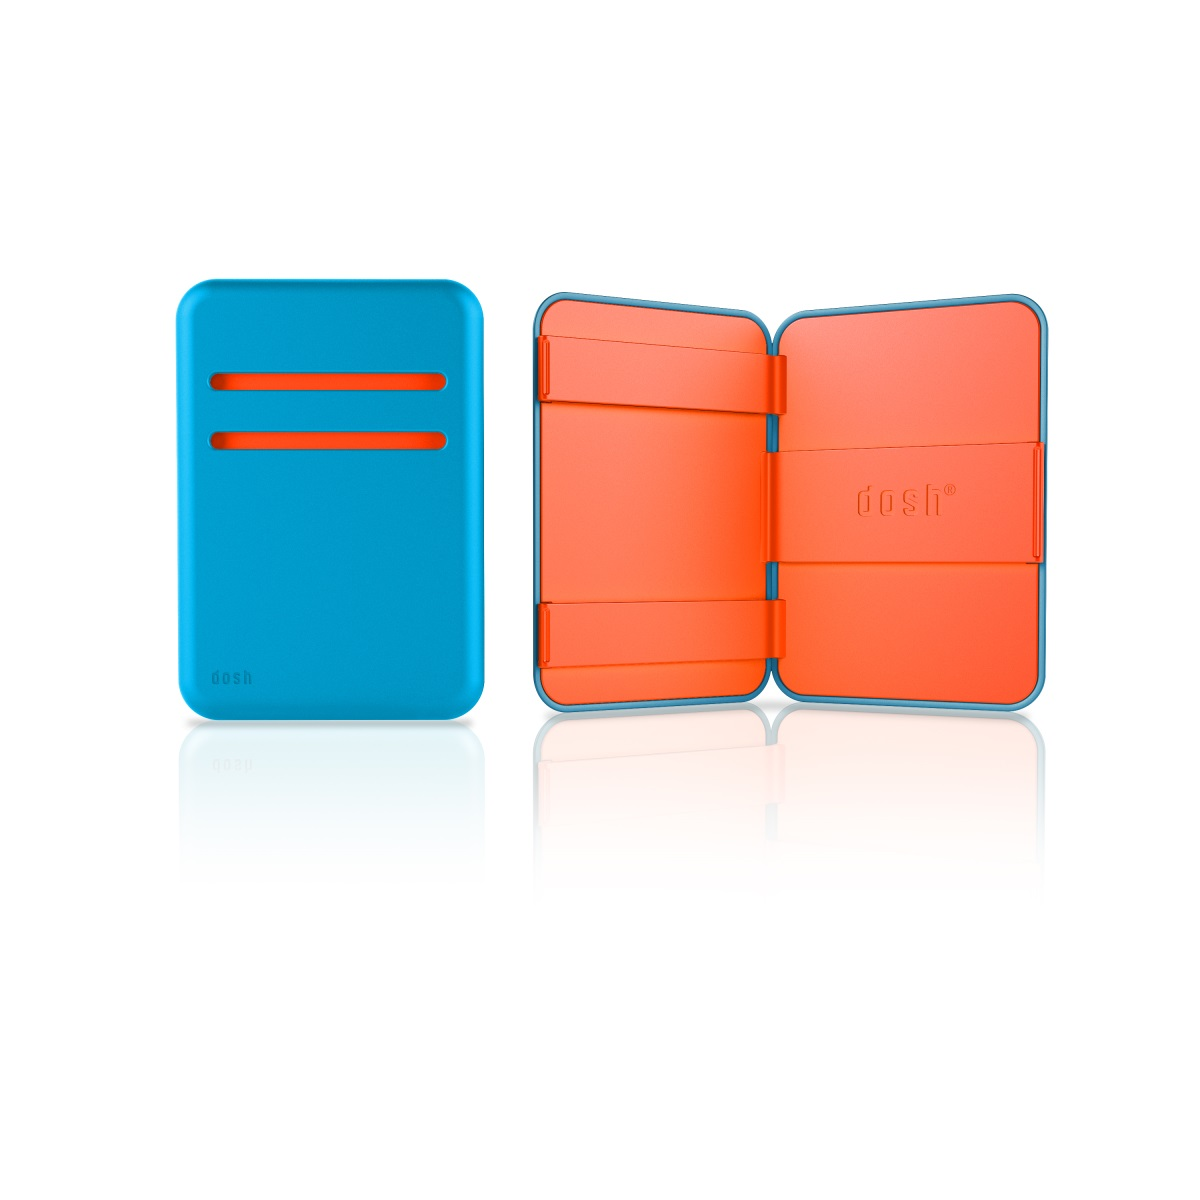 dosh MAGIC - SHERBET- Light Blue/Orange